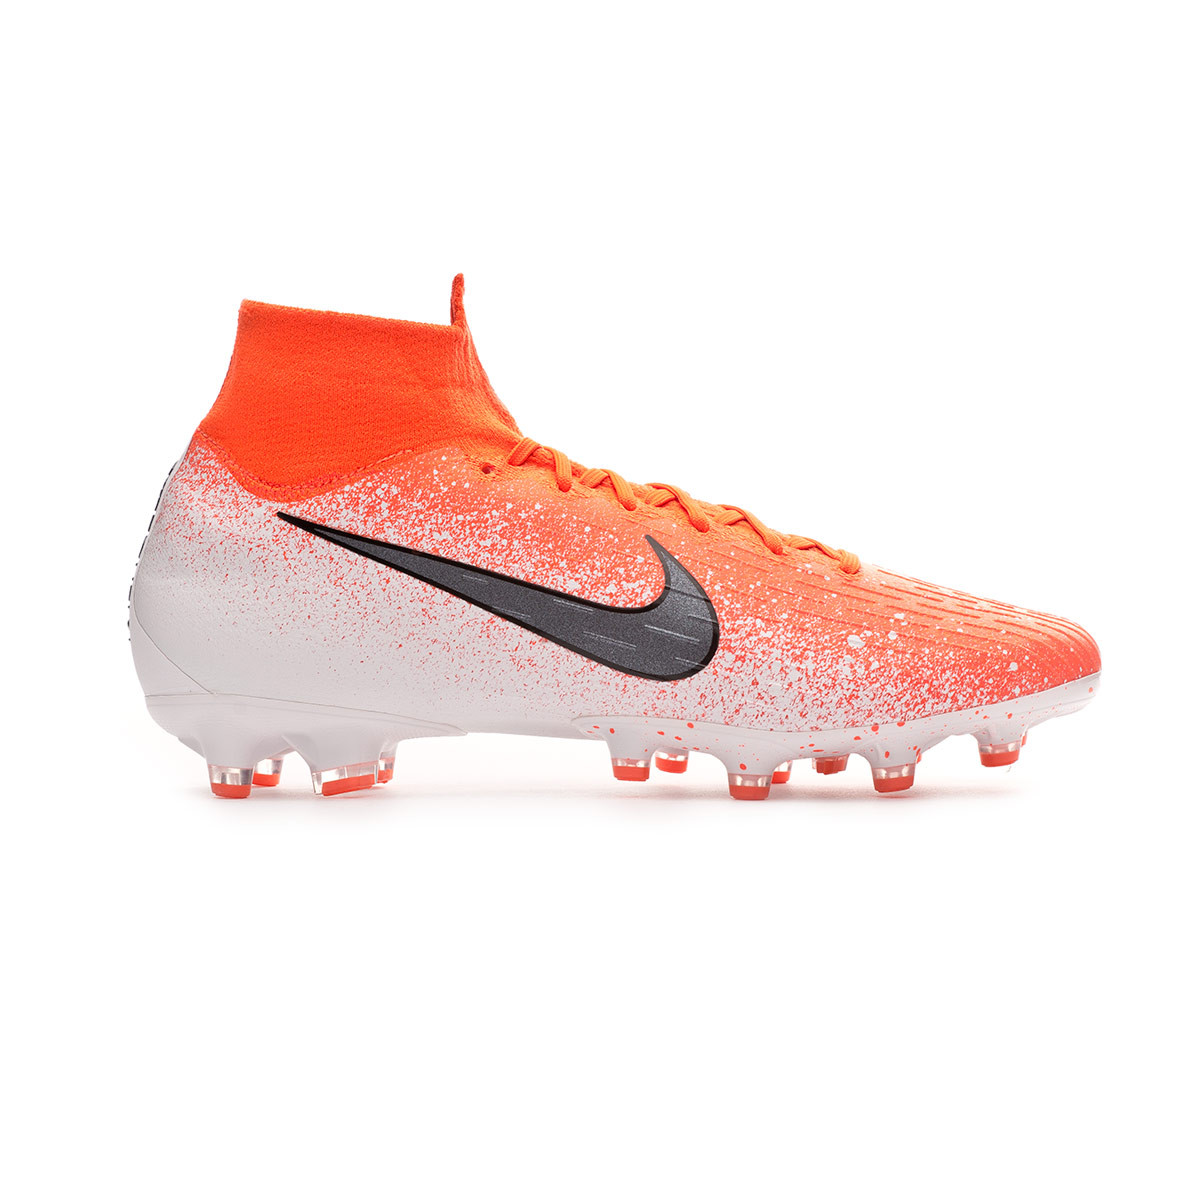 Nike Superfly 6 Elite AG PRO Botas de fútbol para césped artificial